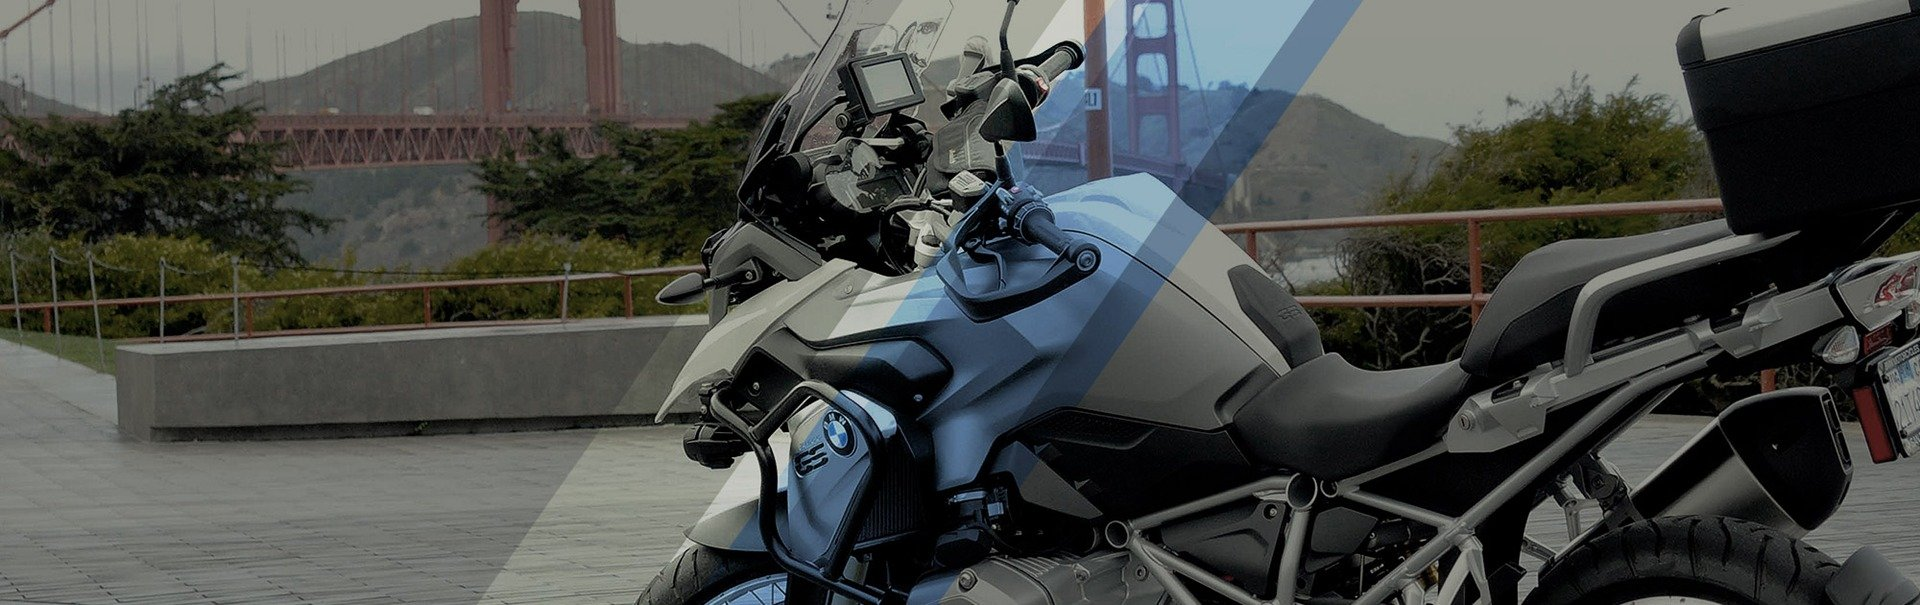 A bike model from a Motorcycle Rentals in San Francisco near the bridge